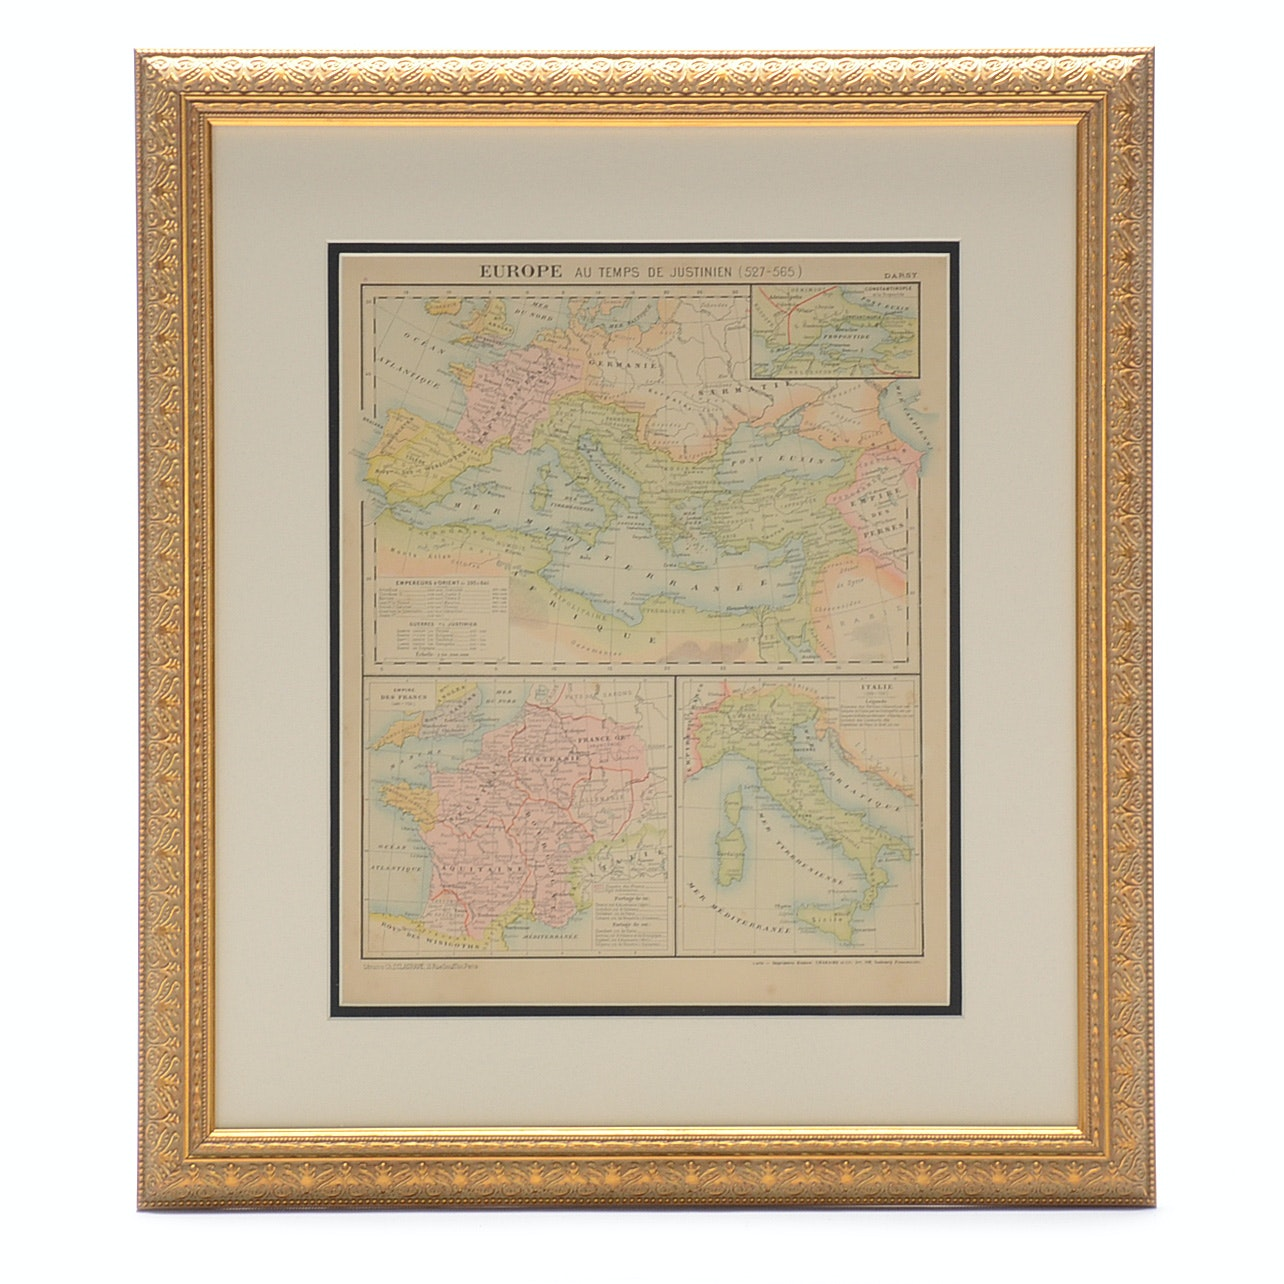 """Antique 1881 French Map Engraving of Europe """"Au Temps de Justinien (527-565)"""""""